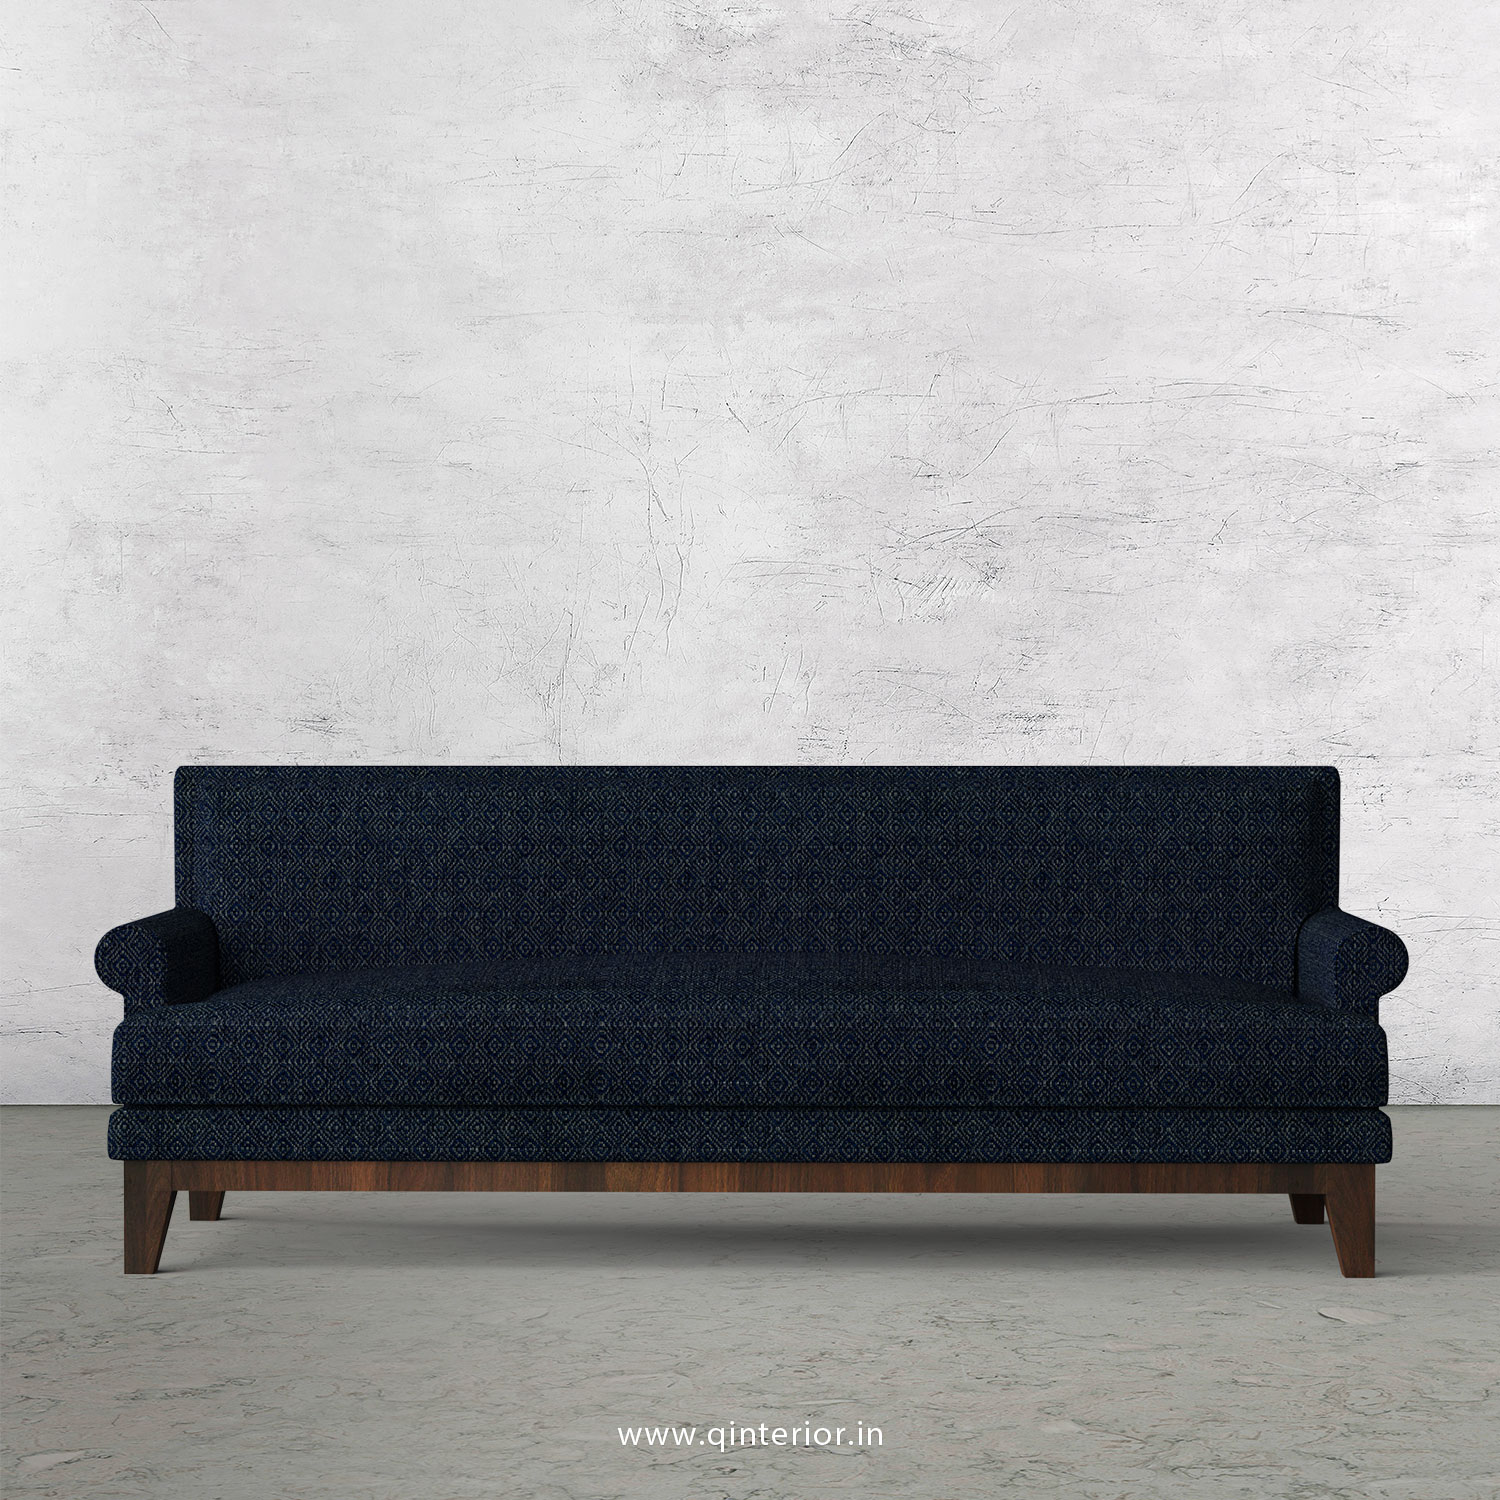 Aviana 3 Seater Sofa in Jacquard - SFA001 JQ20